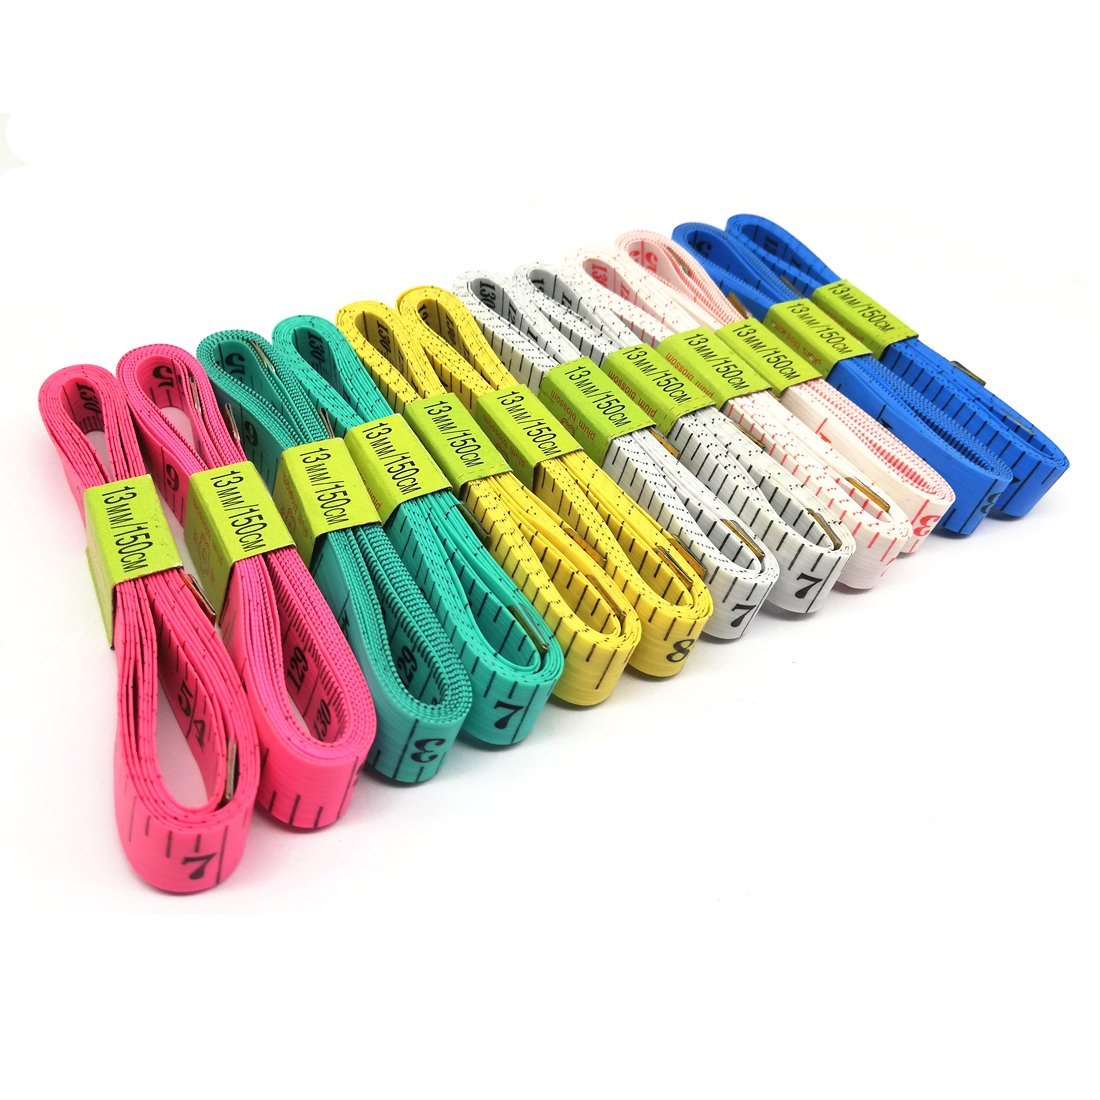 ghdonat.com Sewing Sewing Tools FF Elaine 12 Pcs Double-Scale 60 ...